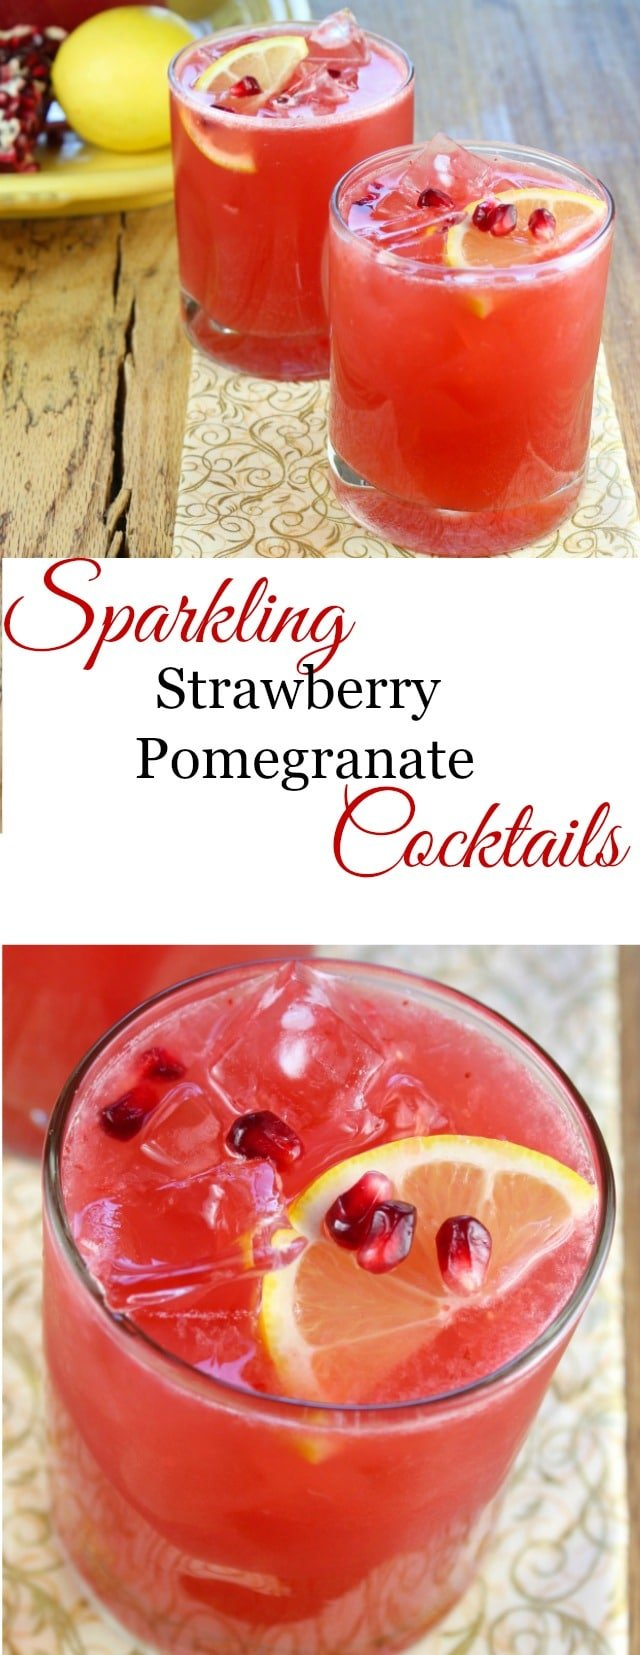 Sparkling Strawberry Pomegranate Cocktails recipe found at missinthekitchen.com